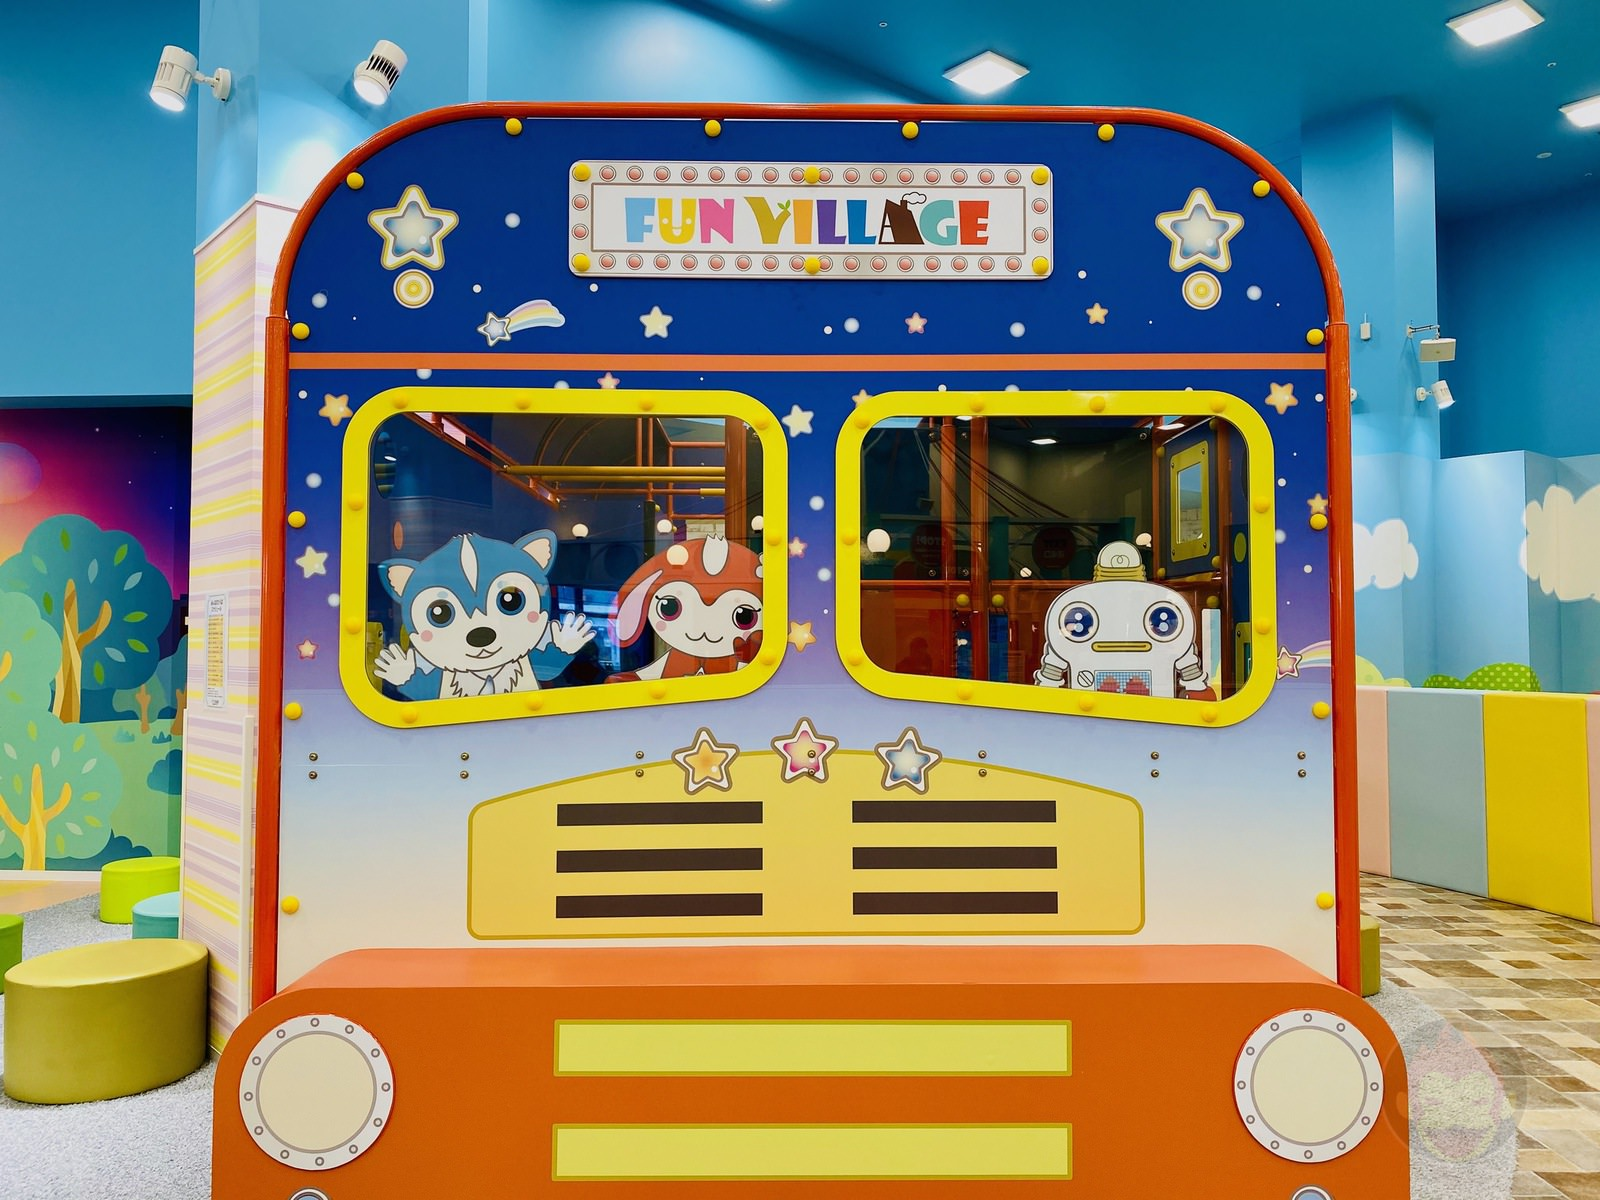 Kids Discovery Fun Village with NHK Characters 22